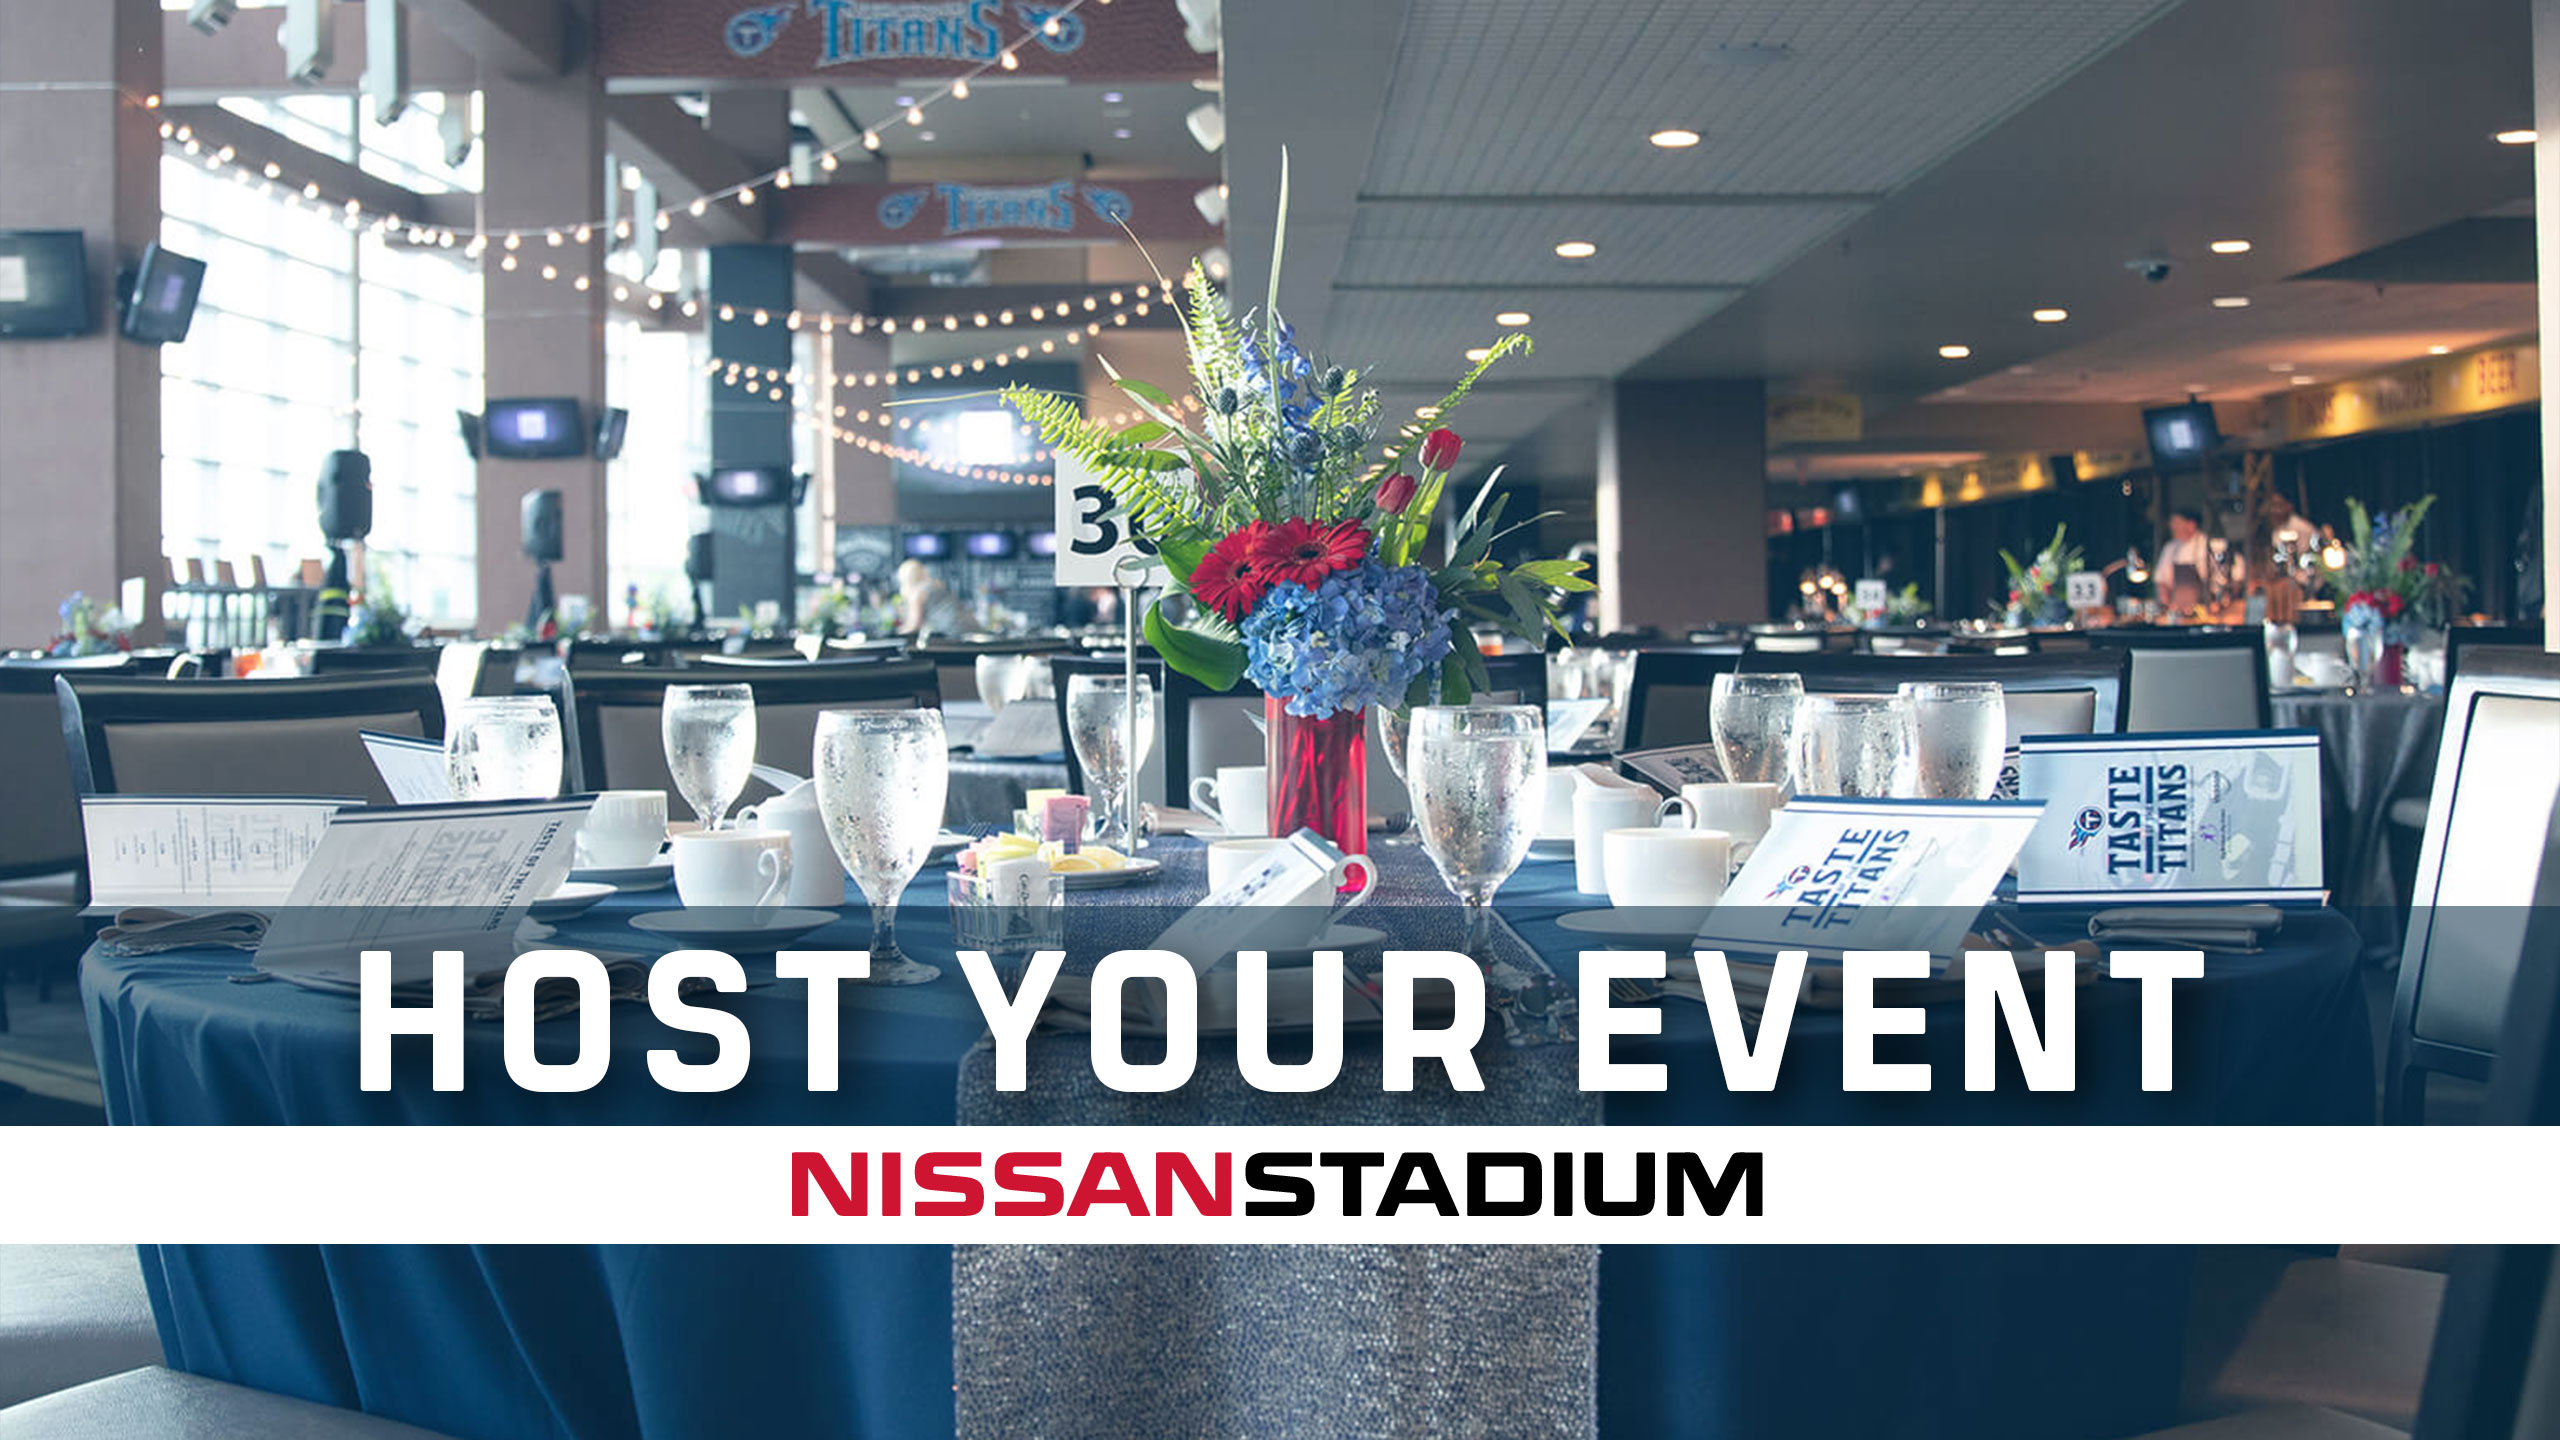 NissanStadium.com for More Info